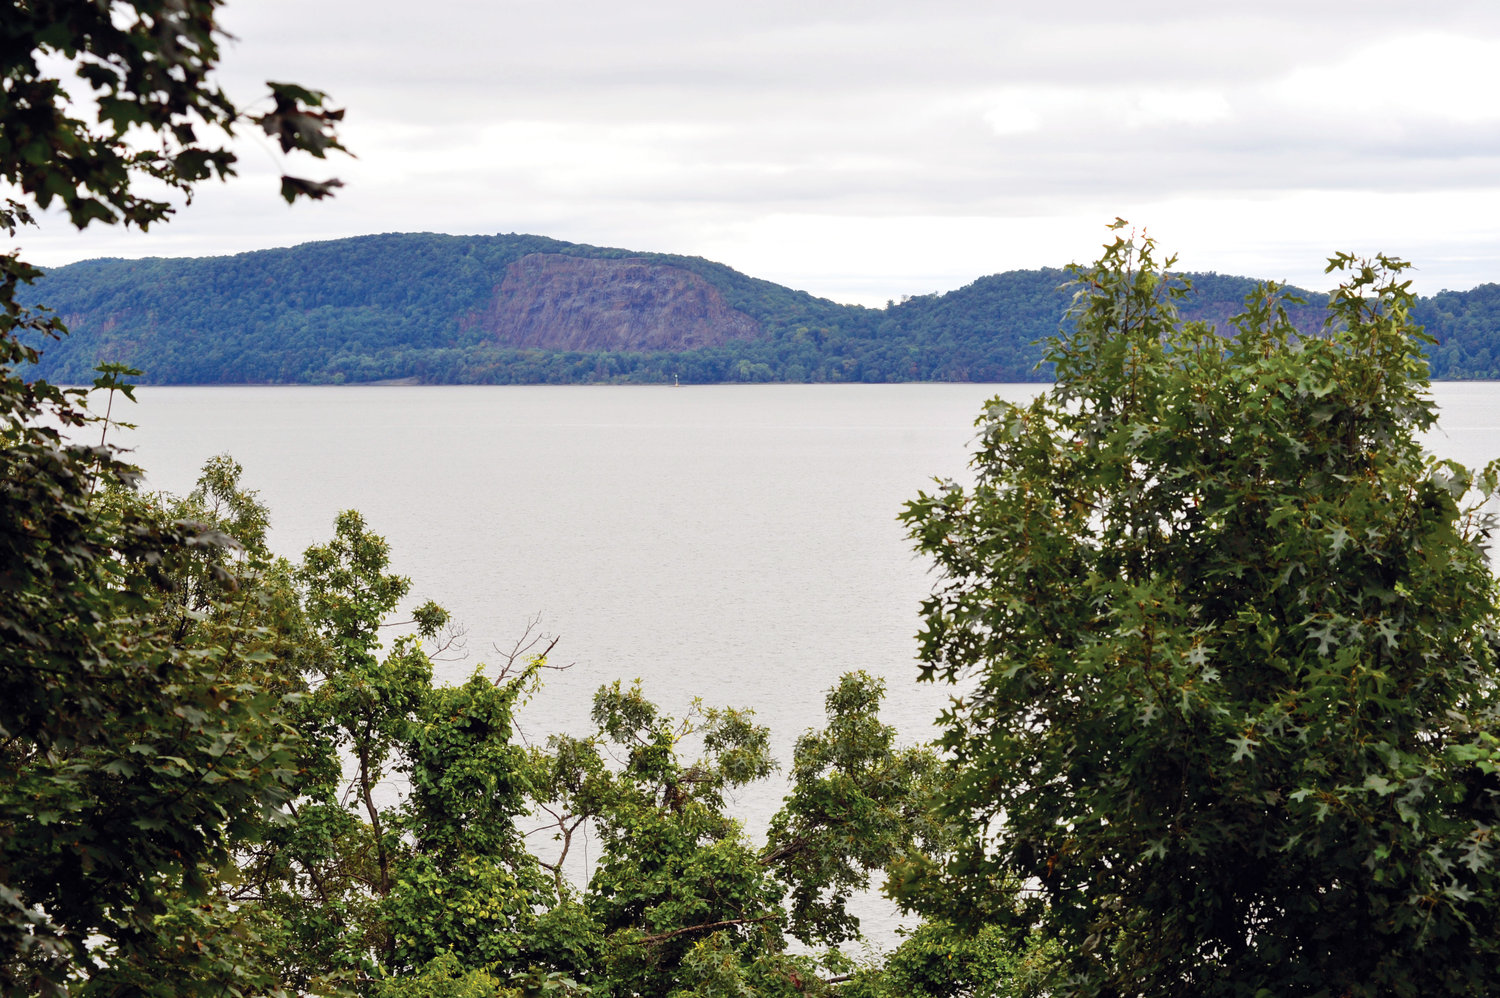 A view beyond the trees at Mariandale shows the Hudson River and the landscape of Rockland County.